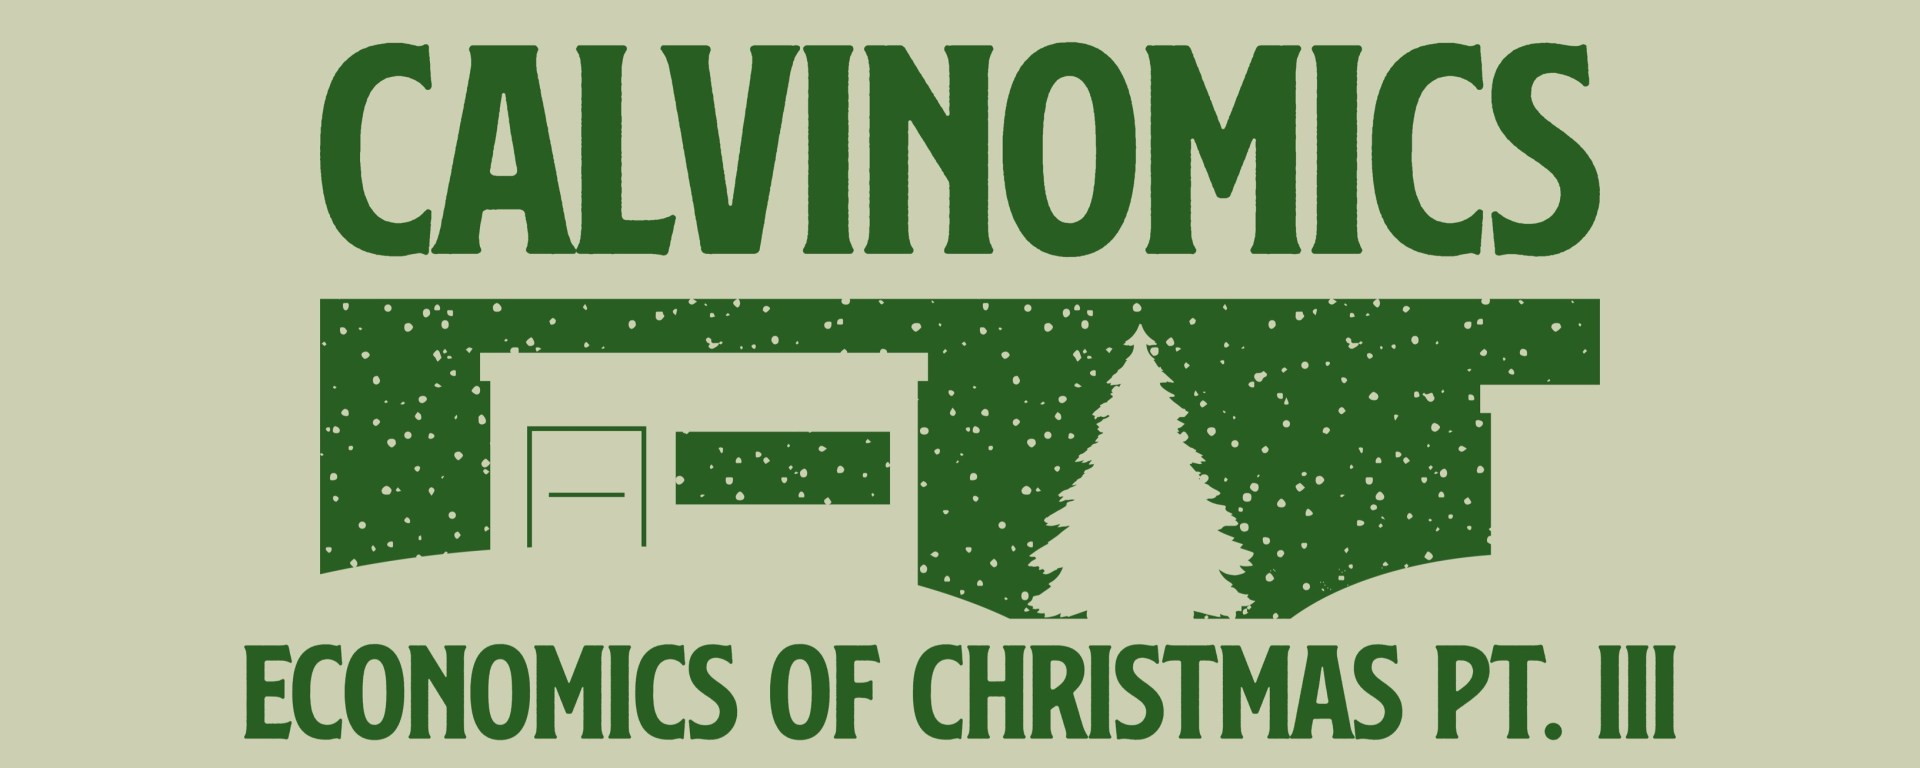 Green background with green text and graphic of calvinomics economics of christmas part 3 and tree and house